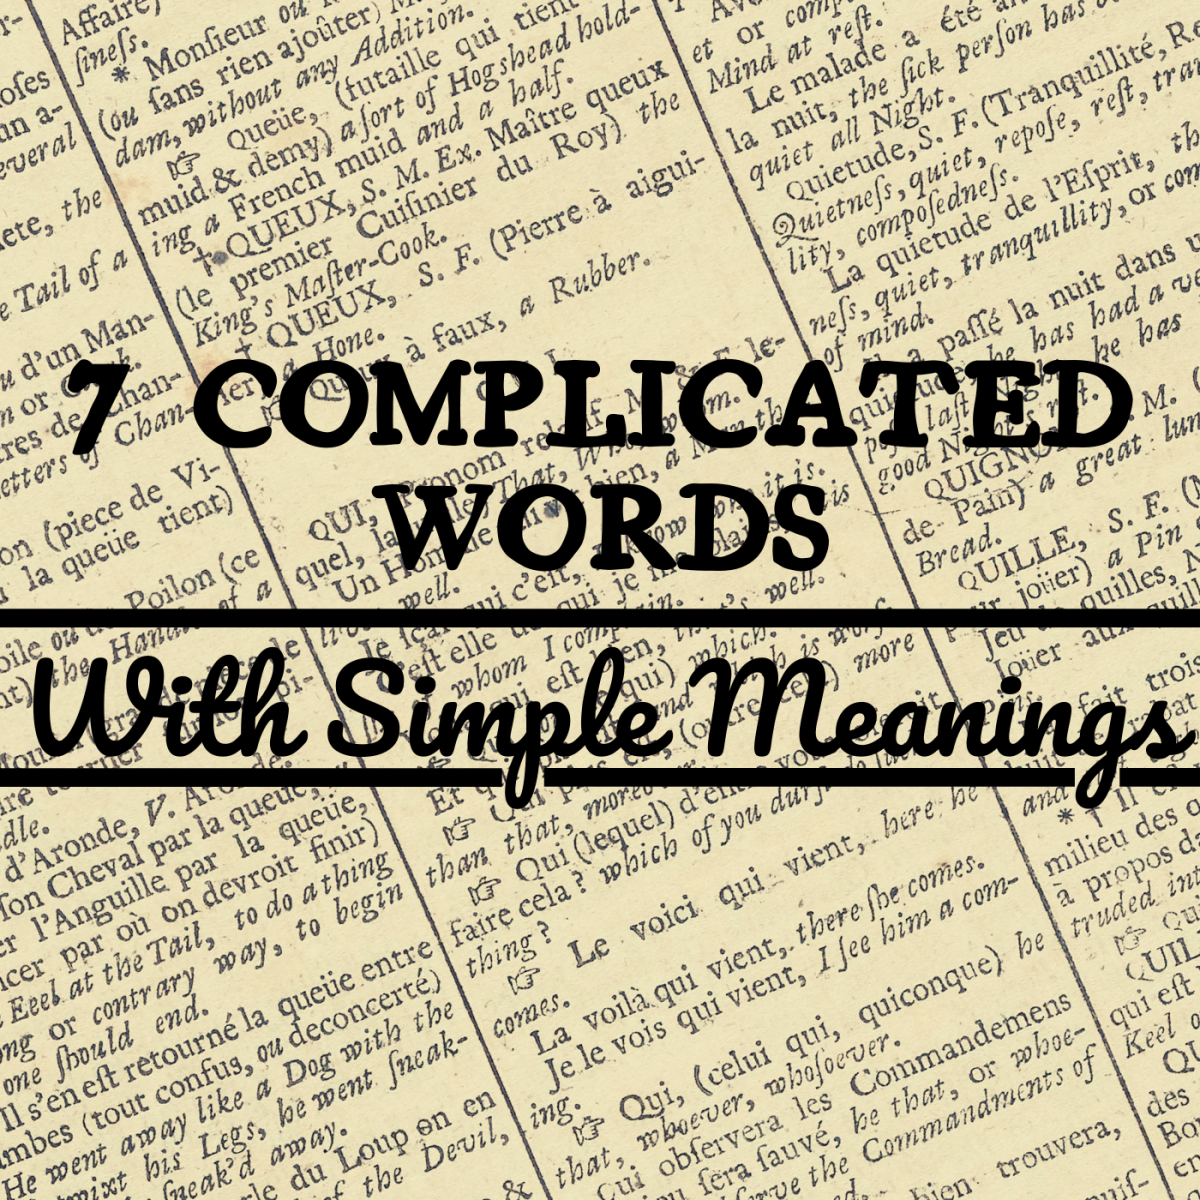 These seven words may be hard to pronounce, but they're easy to understand and fun to use.